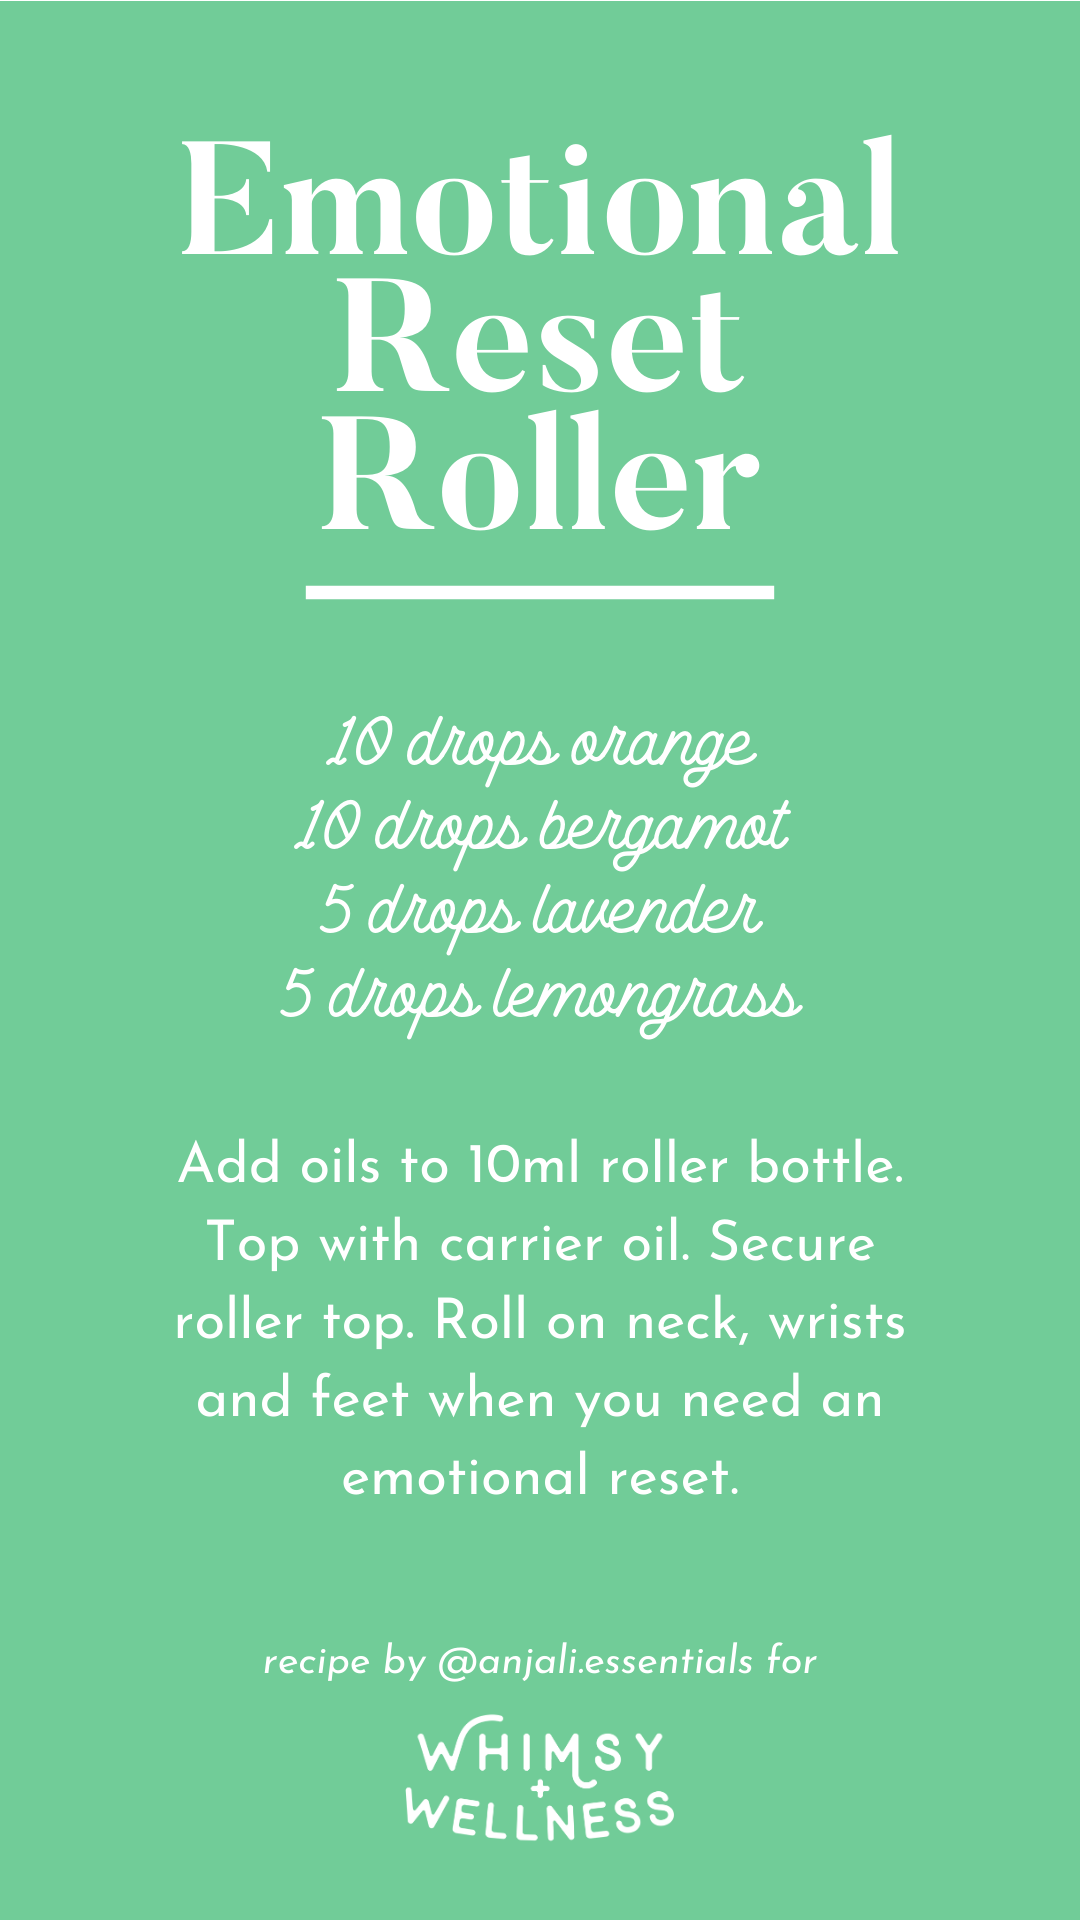 Anjali's Emotional Reset Roller recipe, made with Young Living Essential Oils